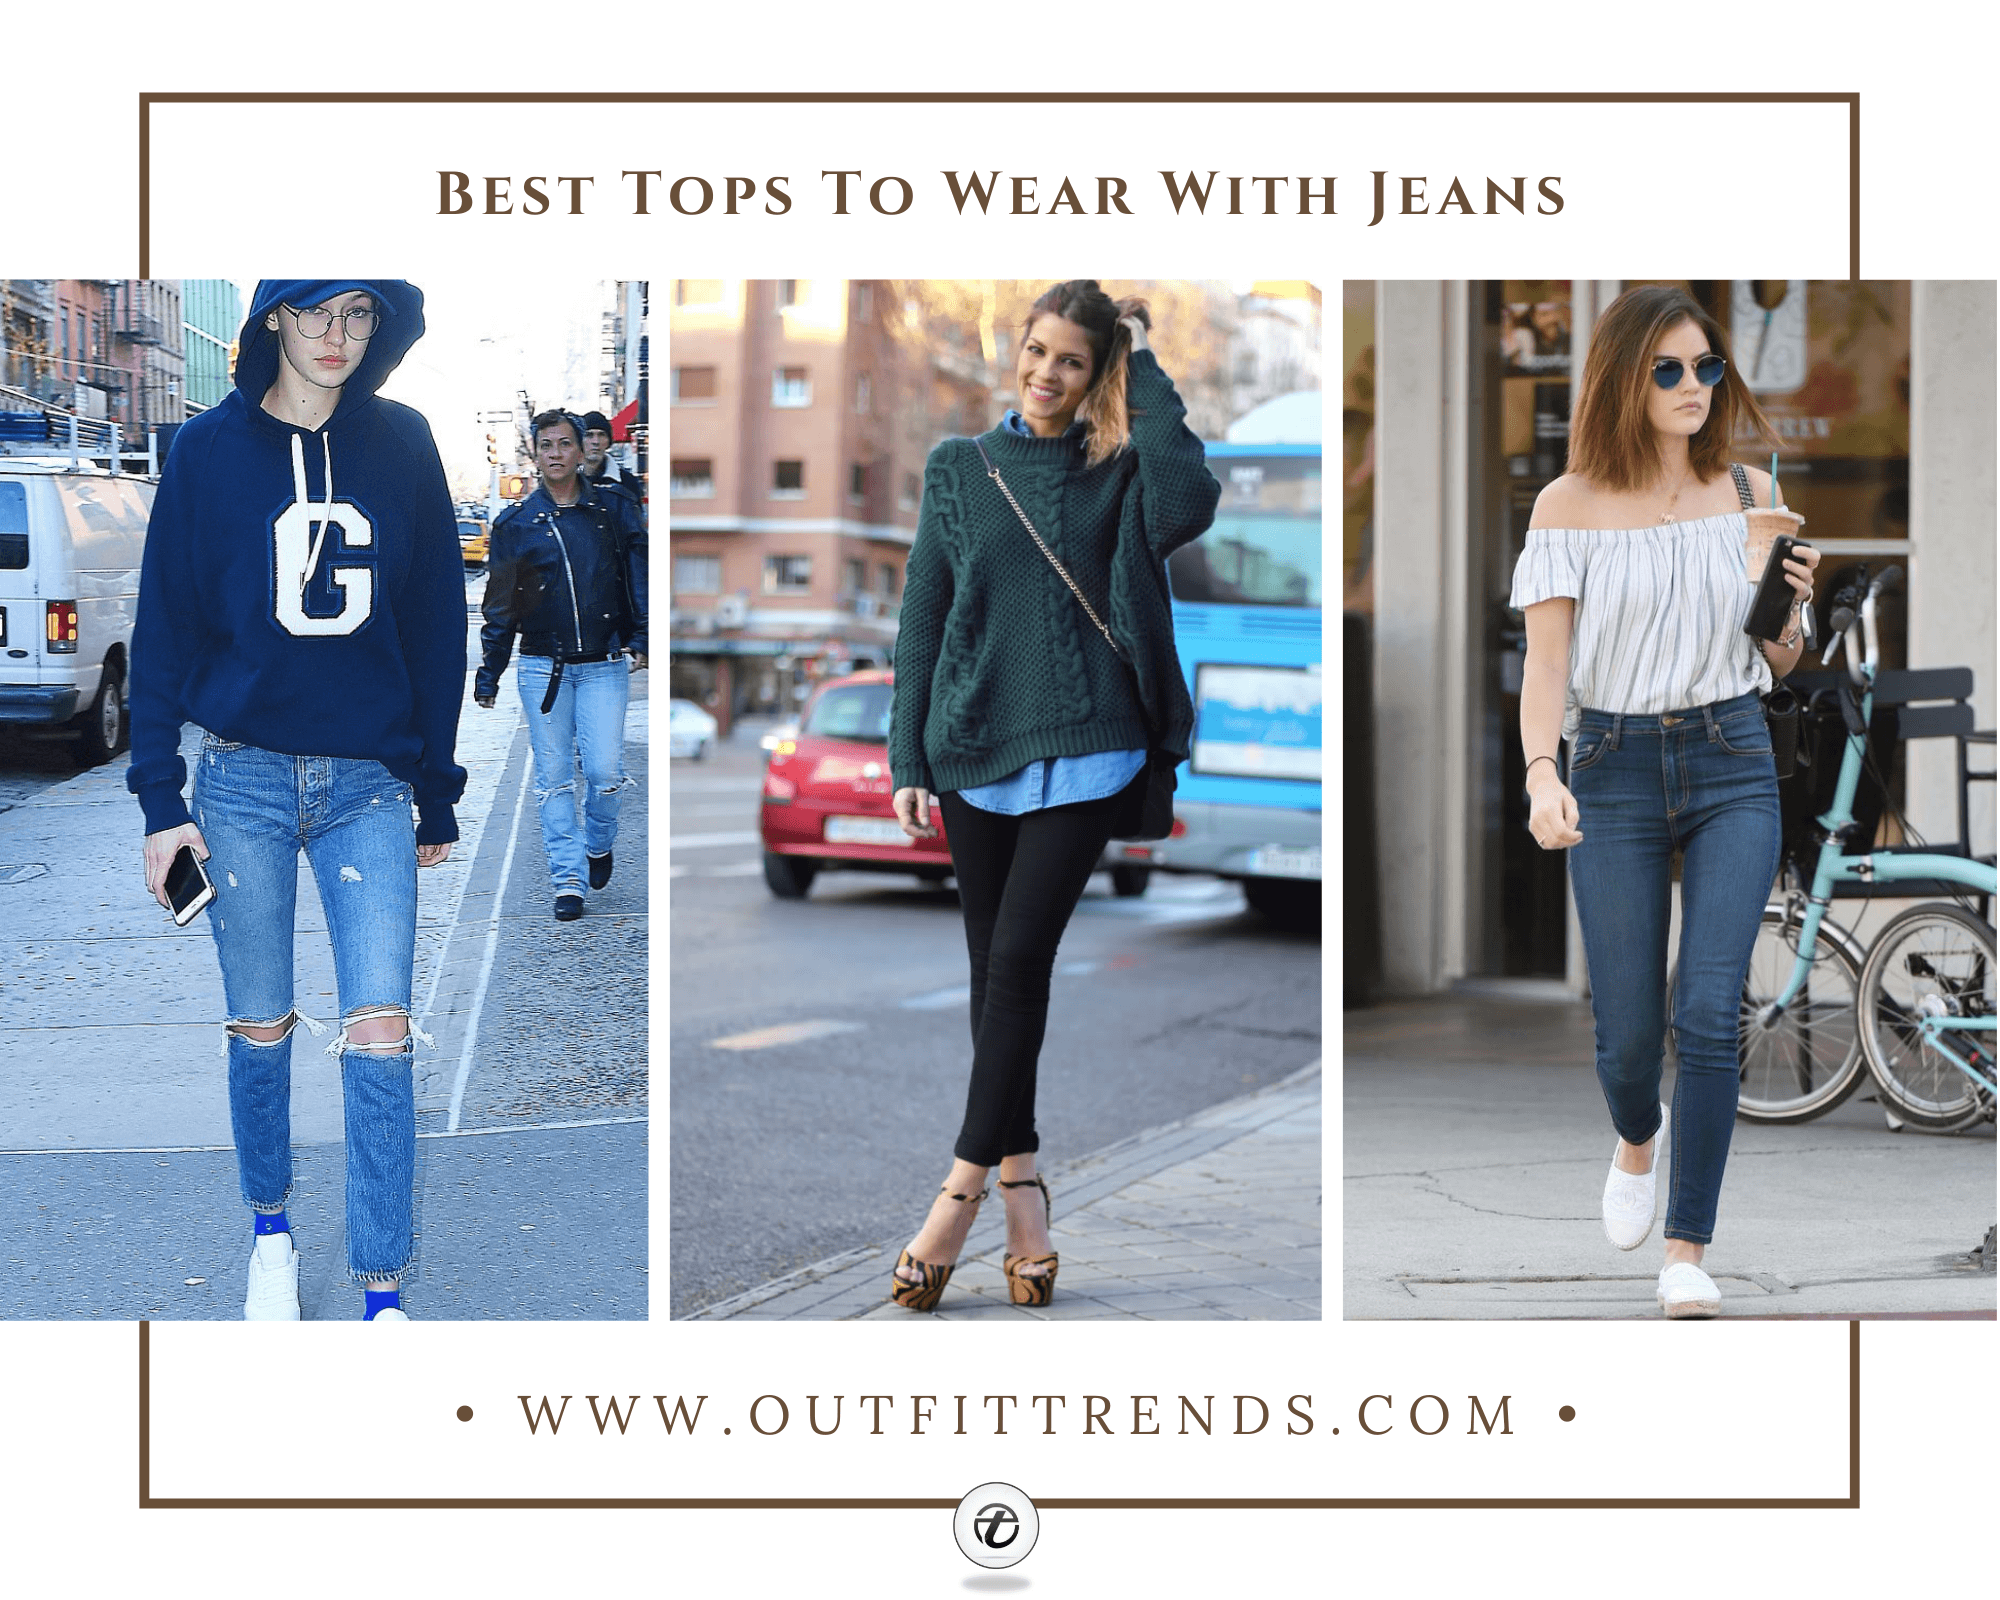 Best Tops to Wear with Jeans | 24 Jeans & Tops Outfit Ideas